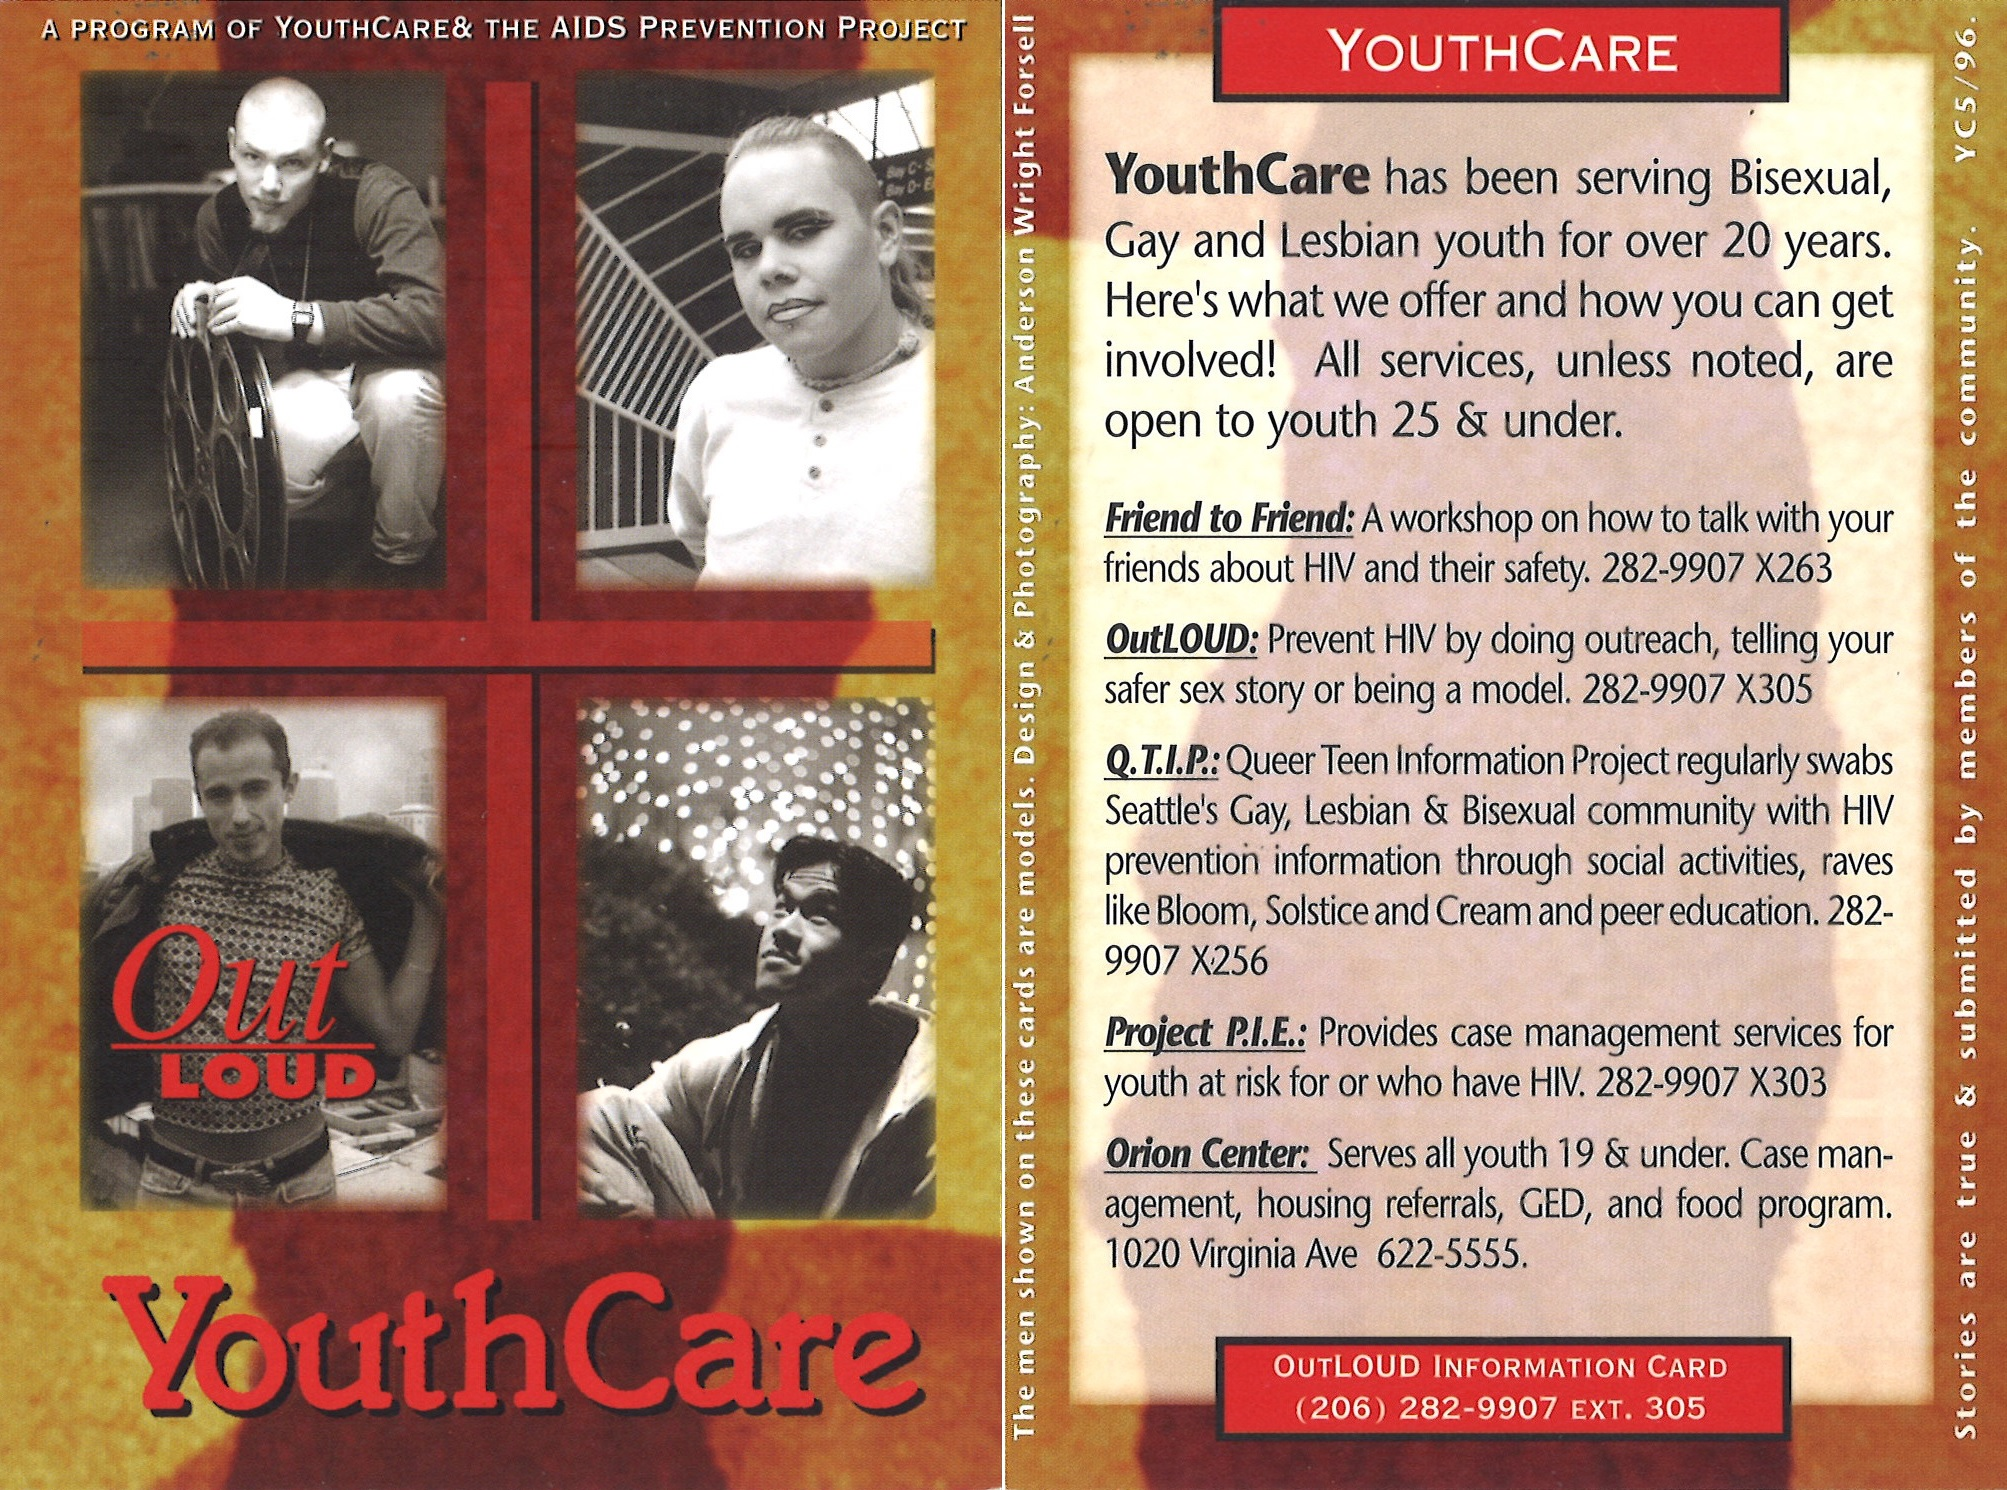 1825-6-15-YouthCare-info-card